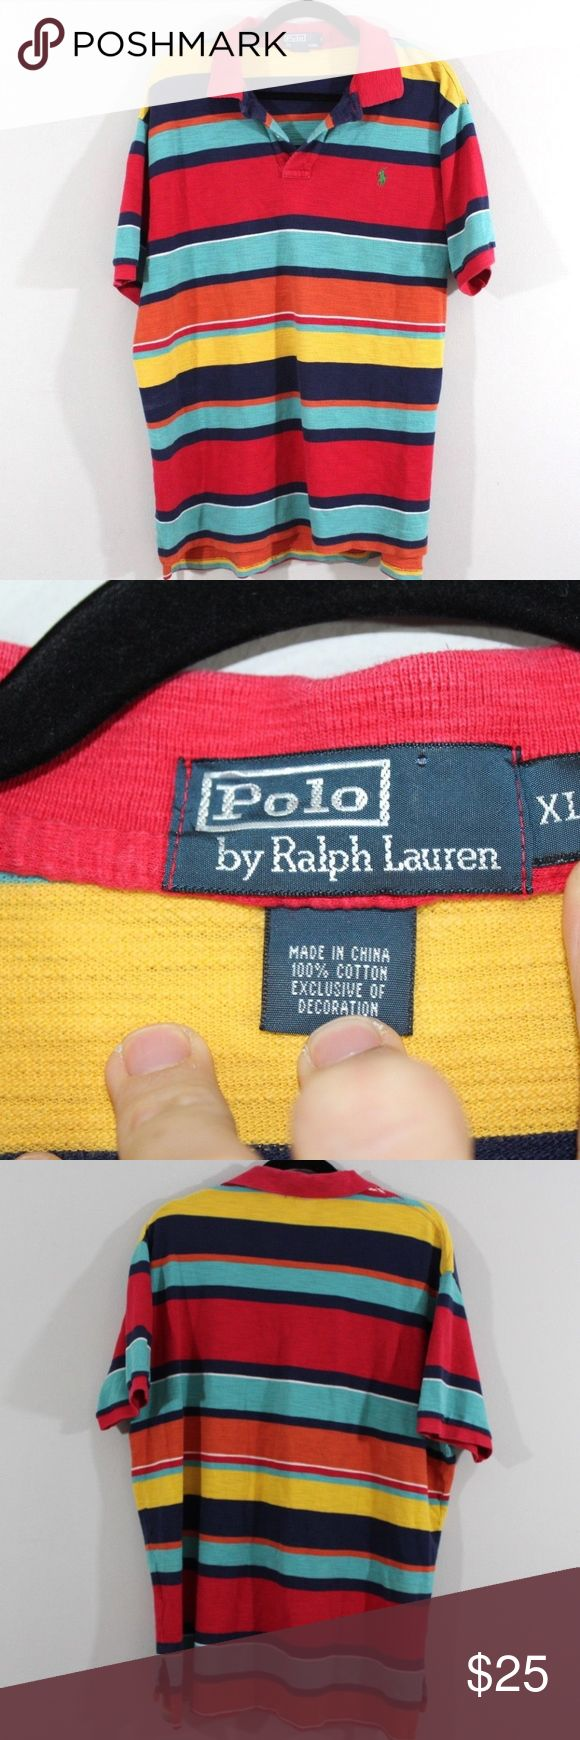 Polo by Ralph Lauren Striped Golf Shirt XL Polo by Ralph Lauren Striped Shirt  Excellent shirt  Comes from a smoke-free household  Multi-colored with a Green Pony logo  The size is XL and the measurements are 26 inches underarm to underarm and 30 inches shoulder to base  Cotton  Check out my other items for sale in my store!  MX Polo by Ralph Lauren Shirts Polos